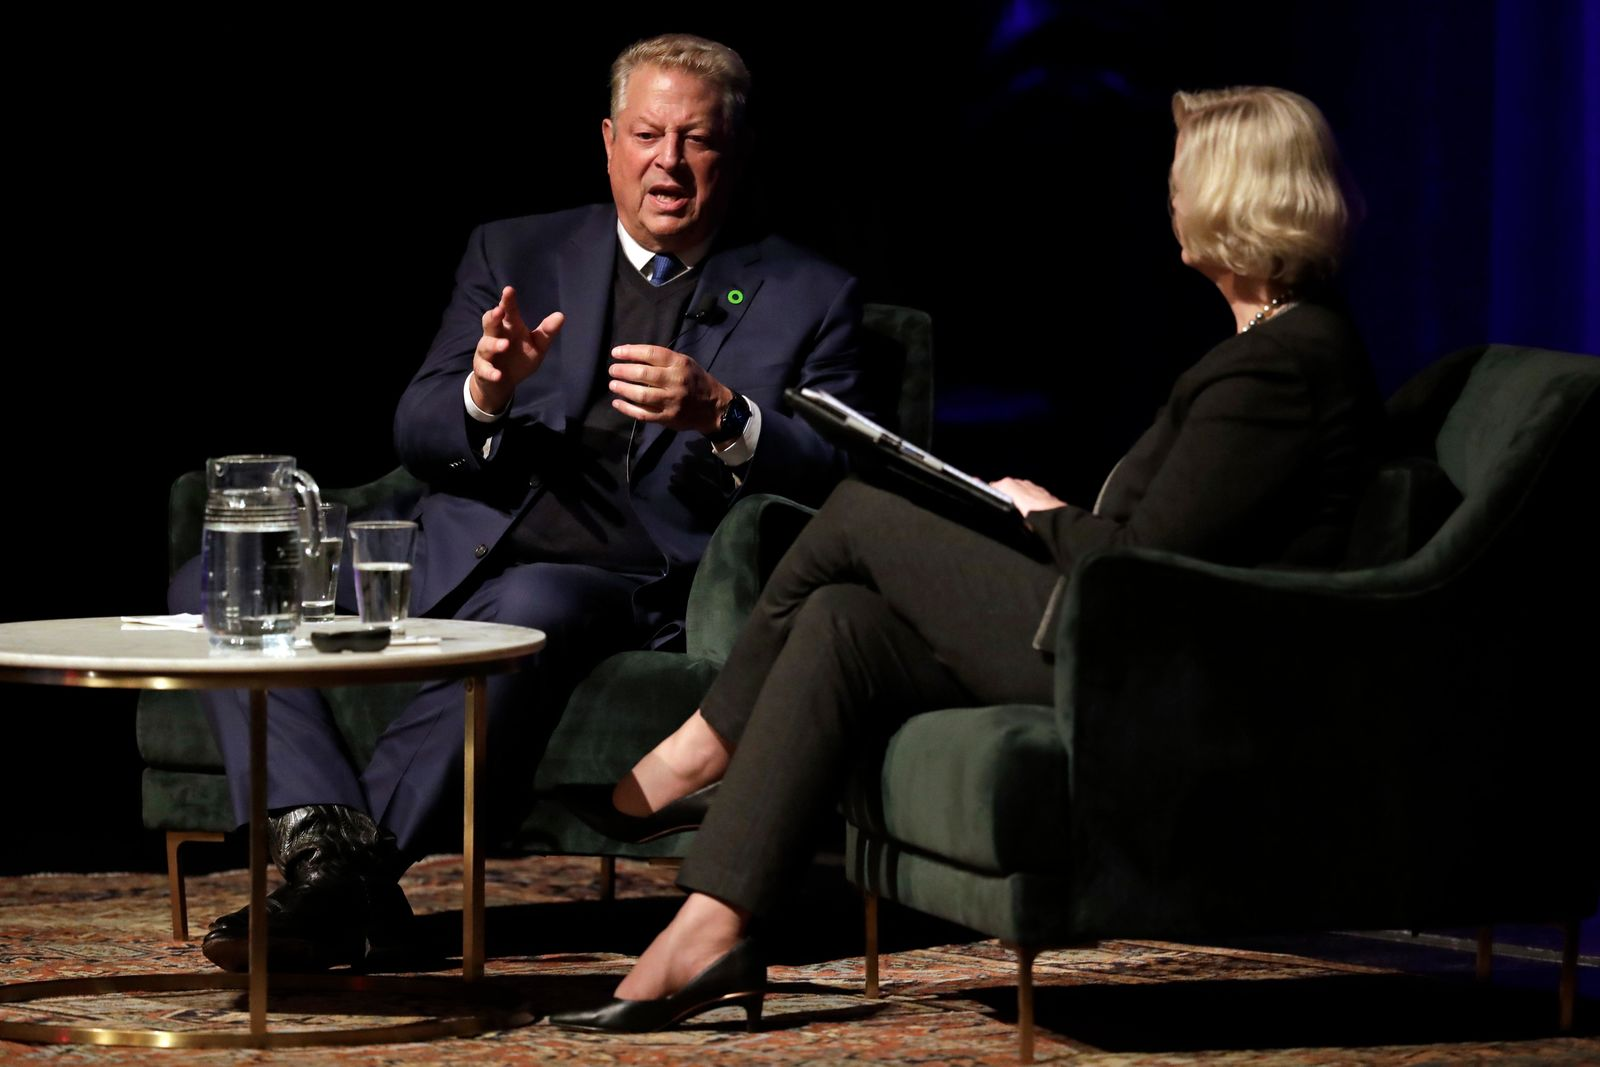 Former Vice President Al Gore speaks with Susan Wente, Vanderbilt University interim provost and chancellor, Wednesday, Nov. 20, 2019, in Nashville, Tenn. Earlier Gore spoke on climate change as part of a worldwide event called 24 Hours of Reality: Truth in Action. (AP Photo/Mark Humphrey)